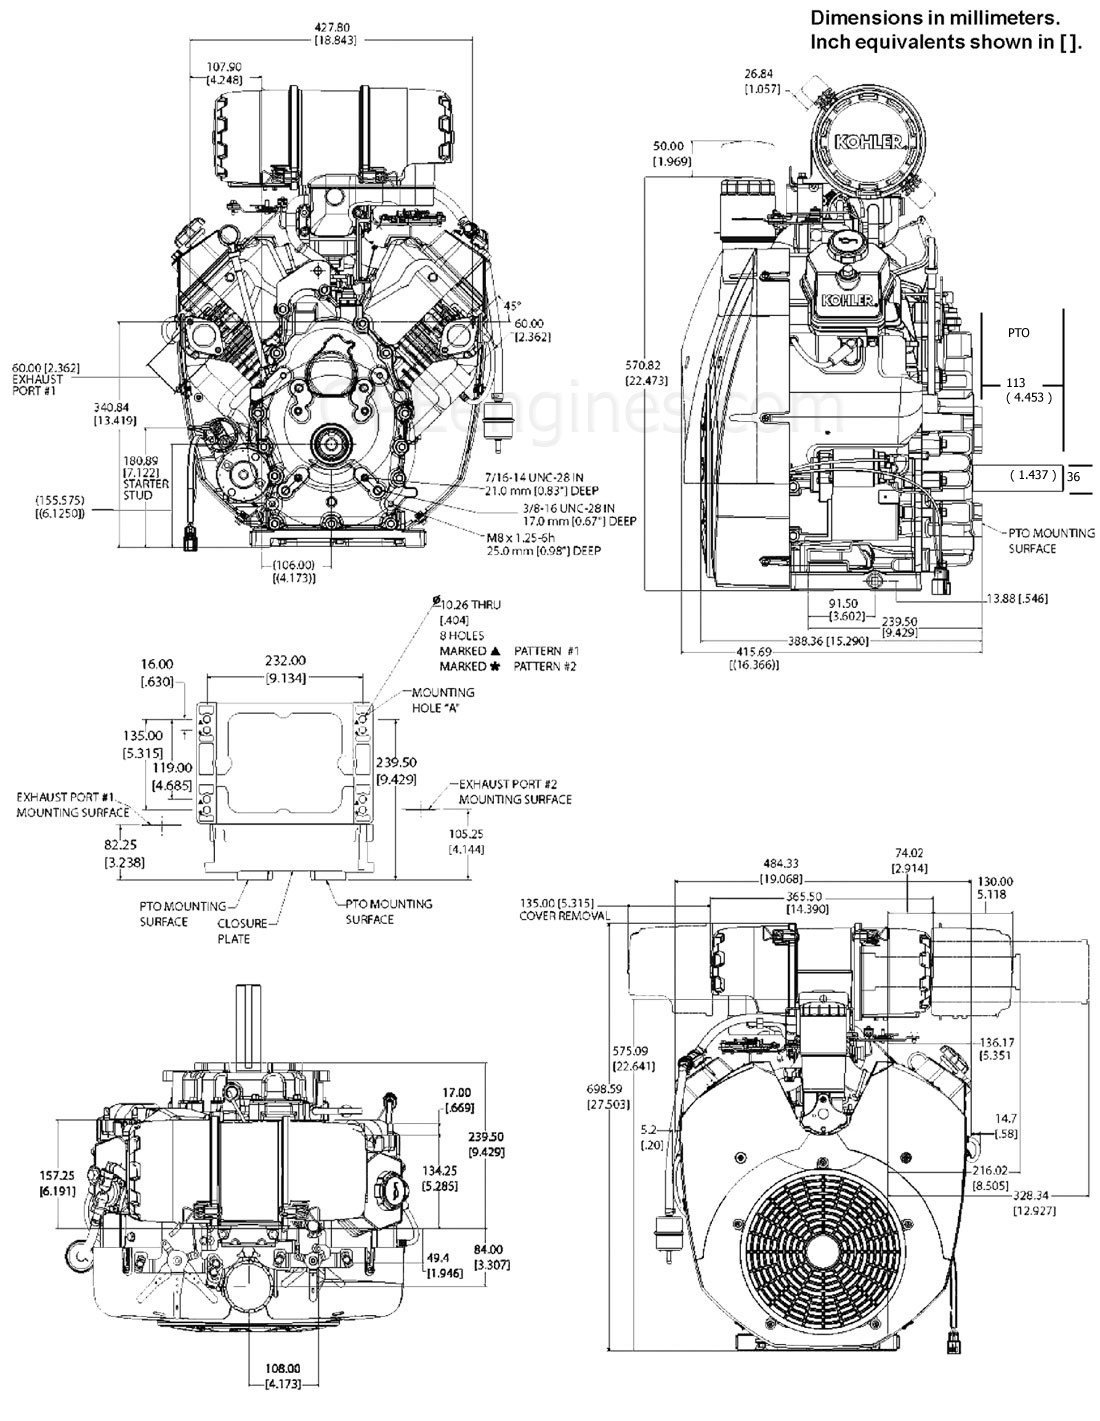 CH980_drawings ch940 ch960 ch980 ch1000 drawings kohler engines and parts store kohler cv730s wiring diagram at virtualis.co